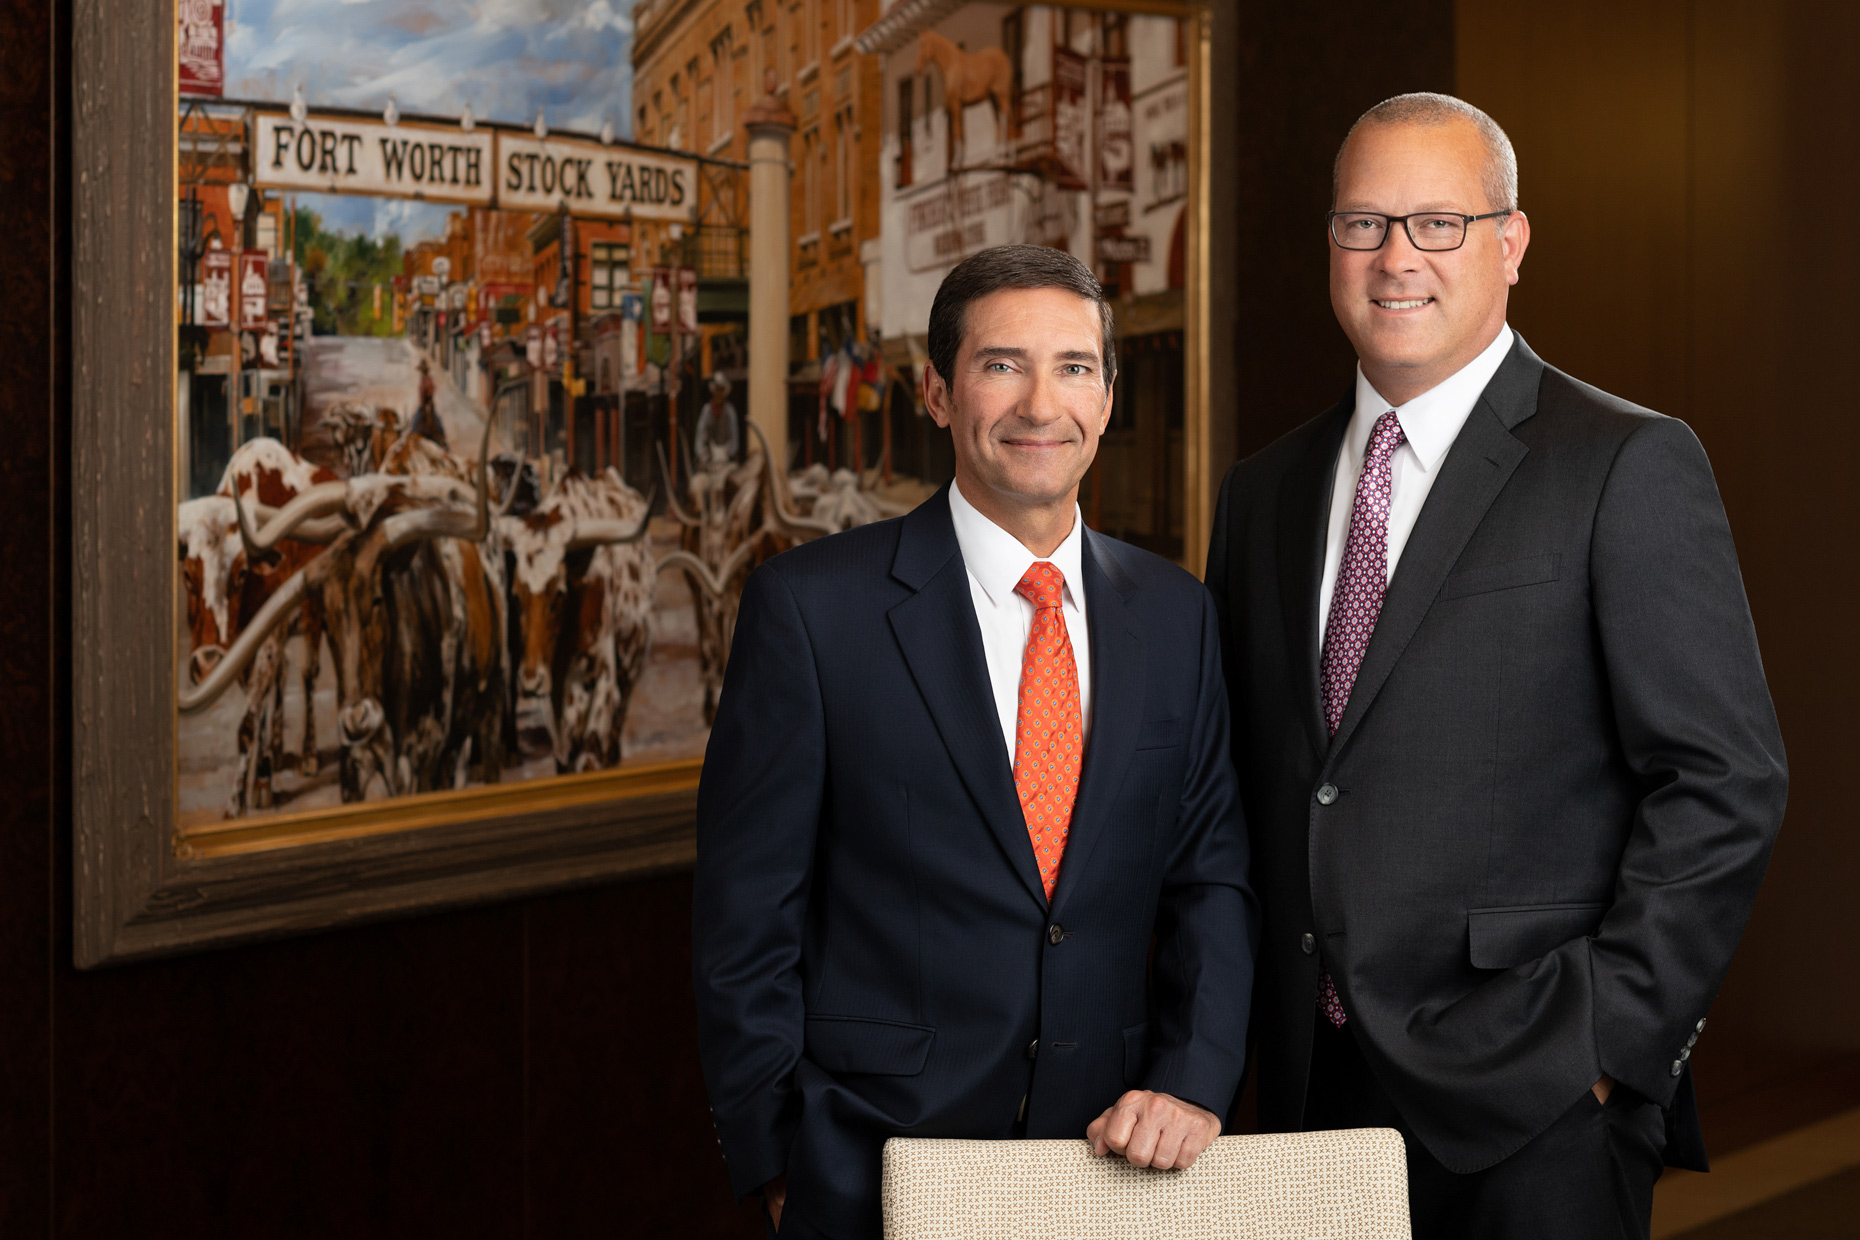 Fort Worth Law Firm photography by Kevin Brown